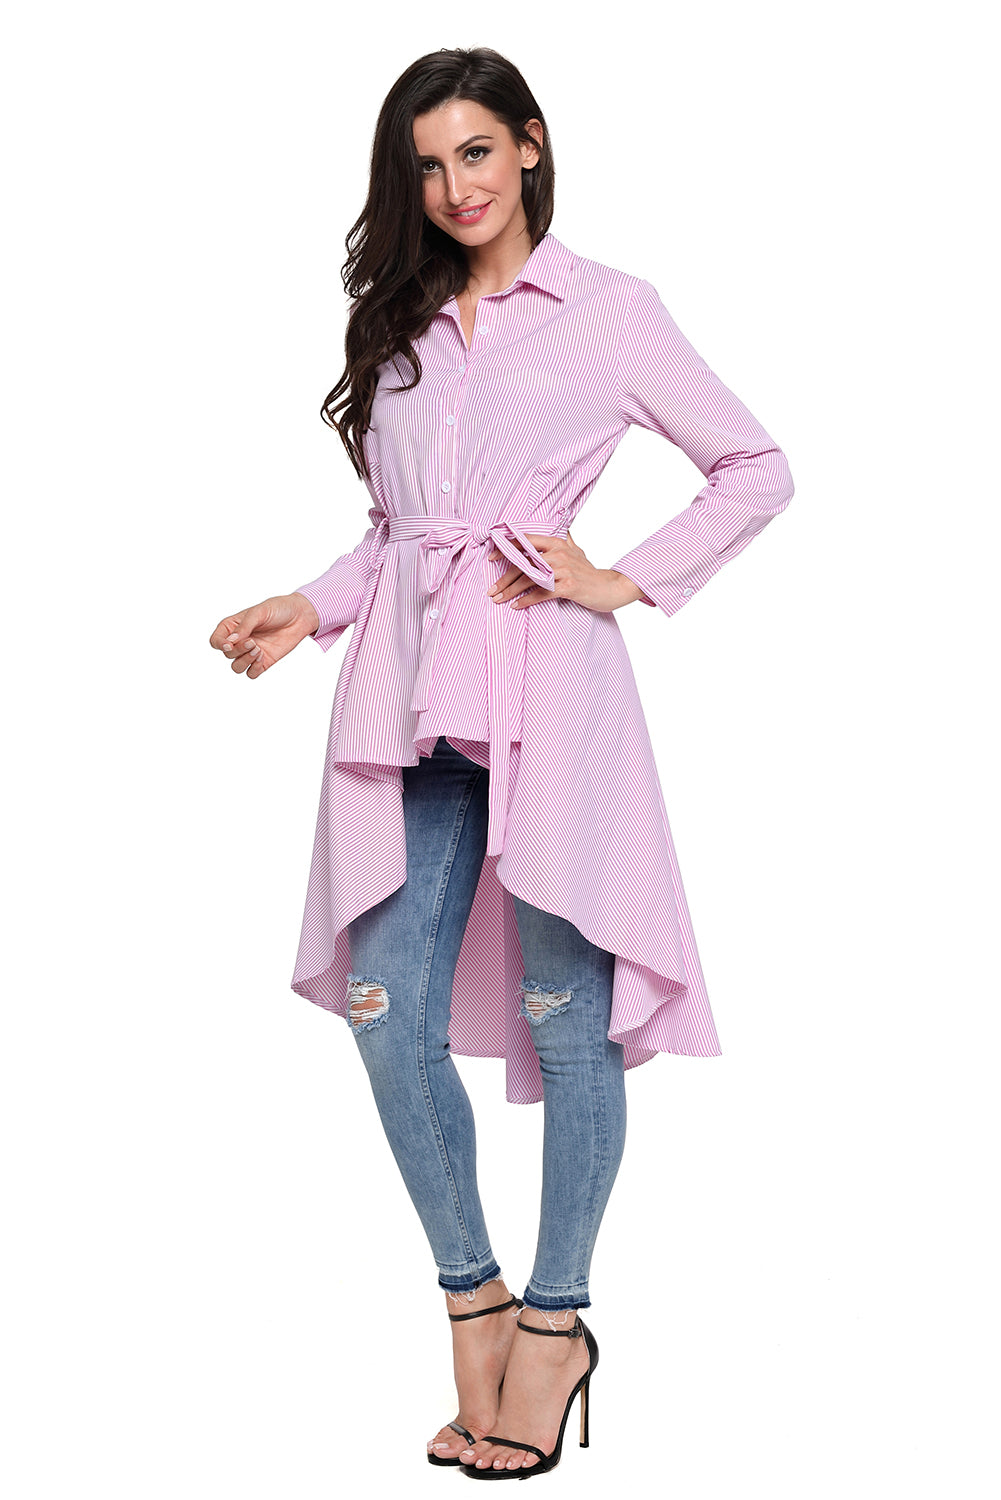 Stylish Pink Striped Lapel Shirt Belted Her Fashion Blouse Top